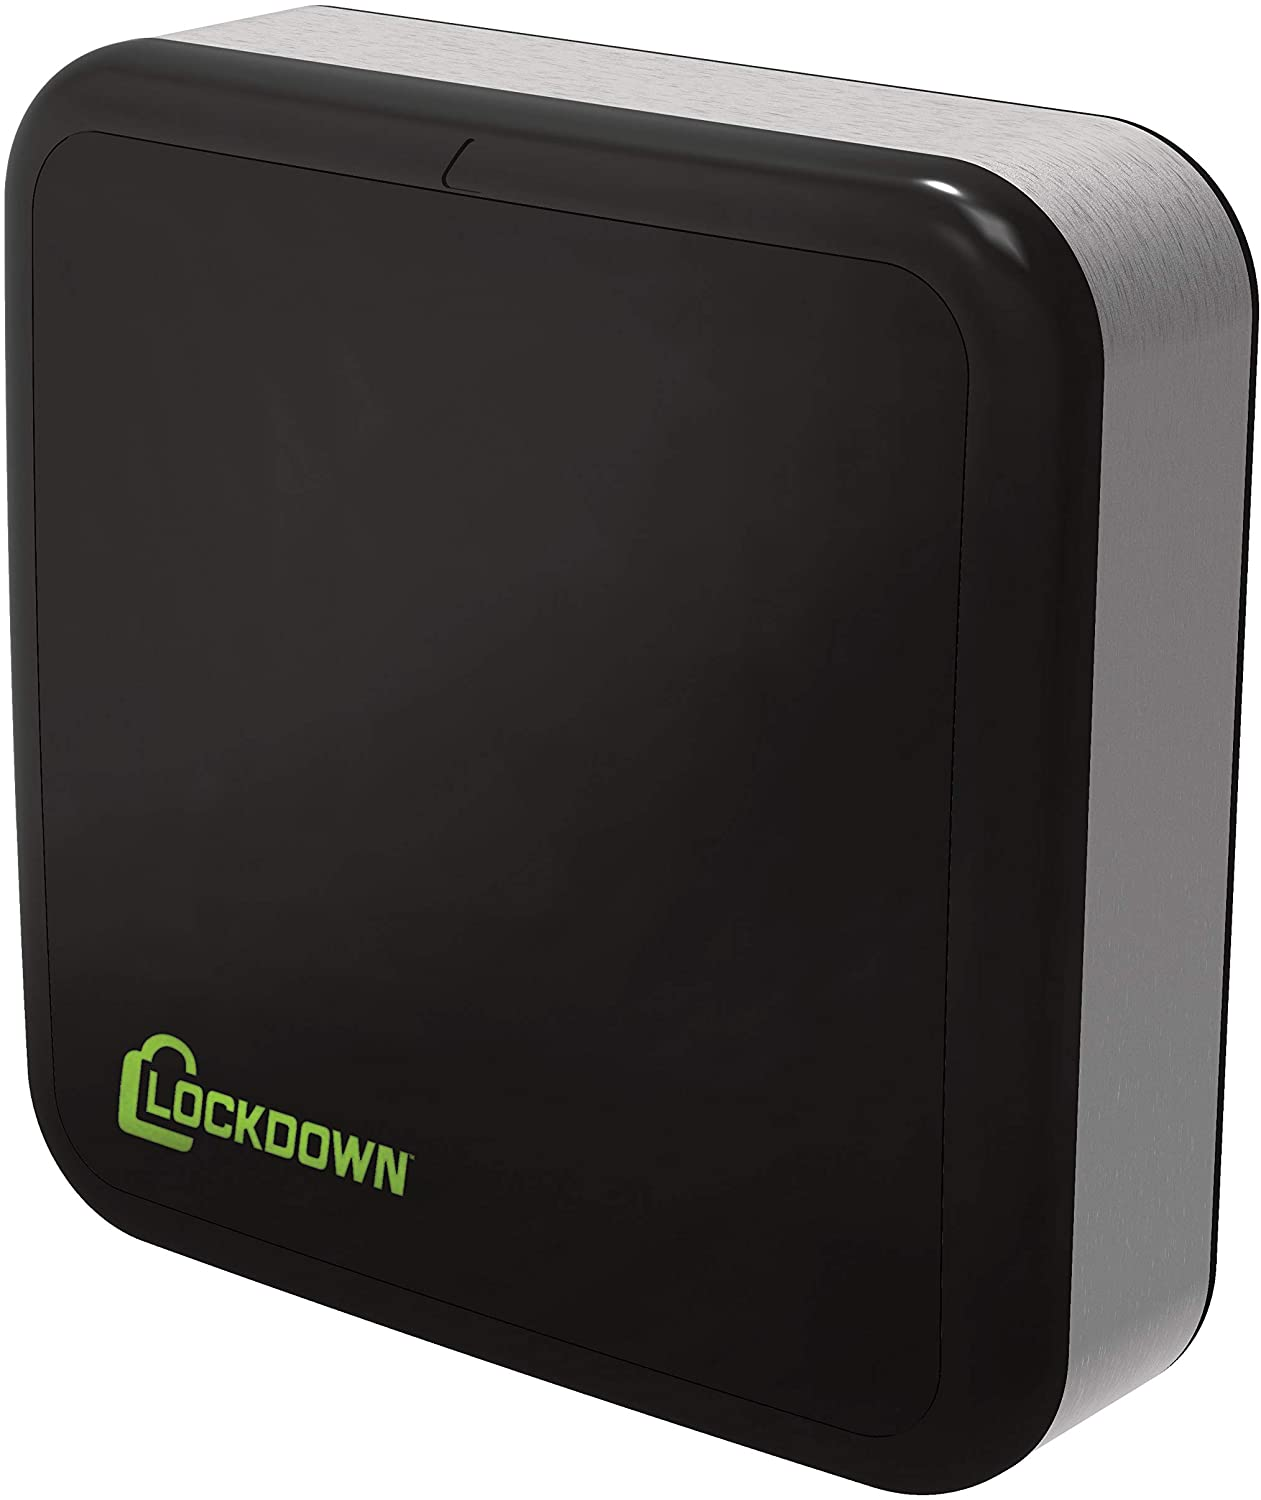 LOCKDOWN Puck Monitoring System with WiFi, Free App, Door Sensor, Motion and Temperature Detection and Easy Install for Vault, House and Room Security